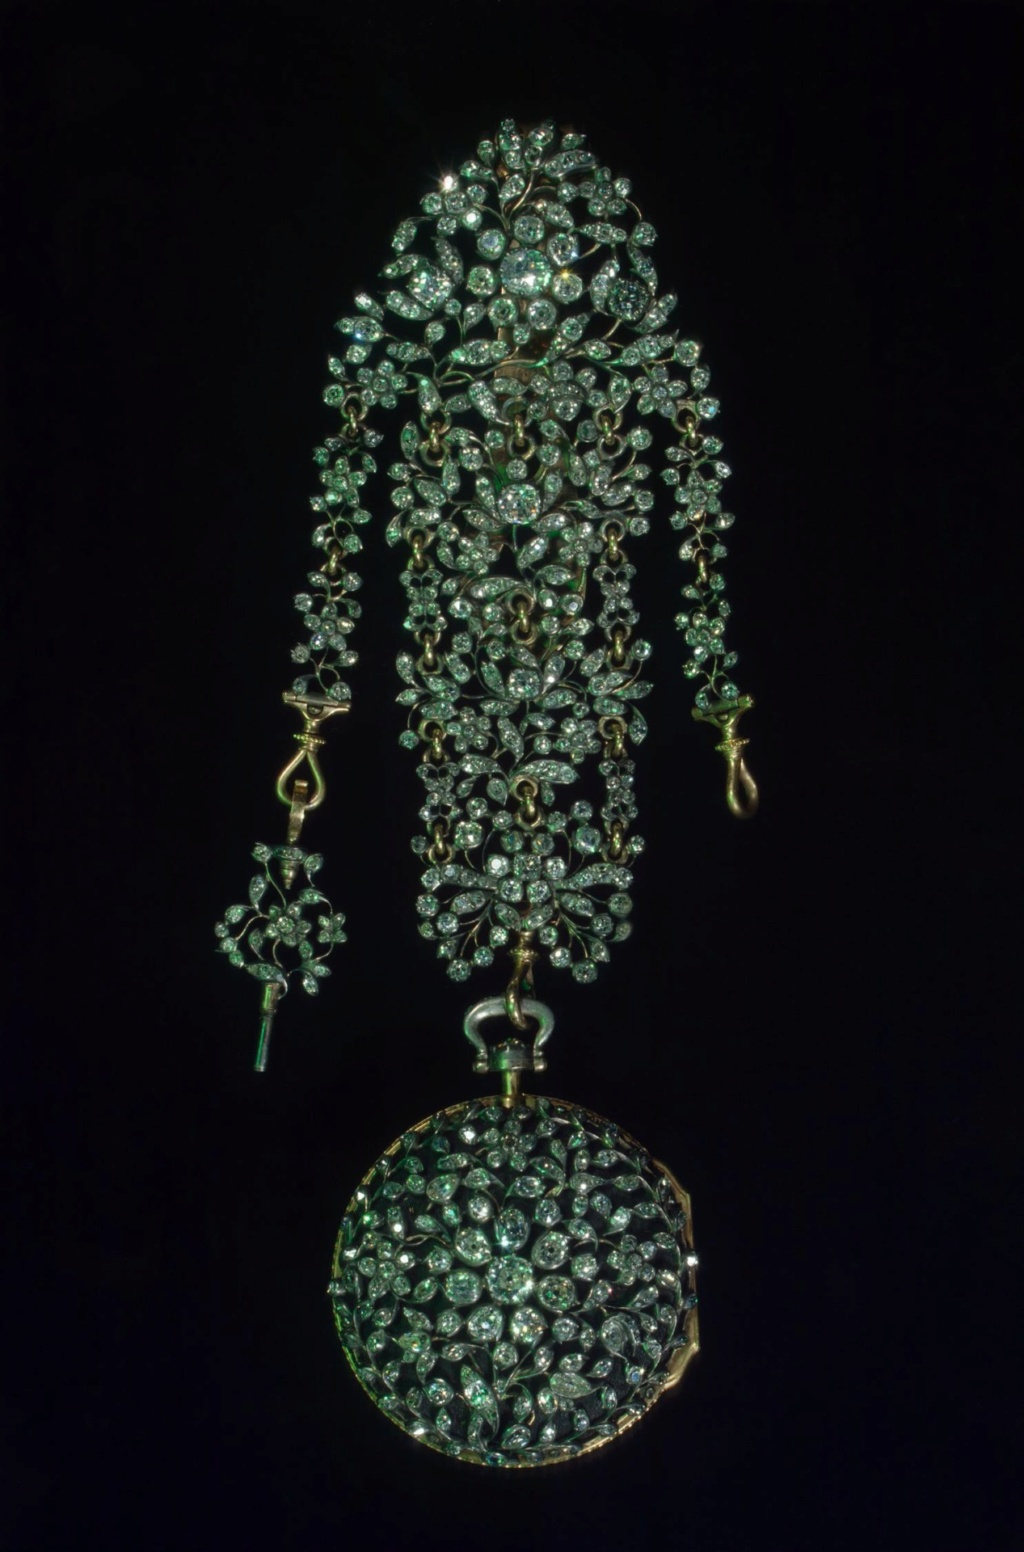 Exposition : Jewels ! Glittering at the Russian Court, Hermitage Amsterdam Woa_im81